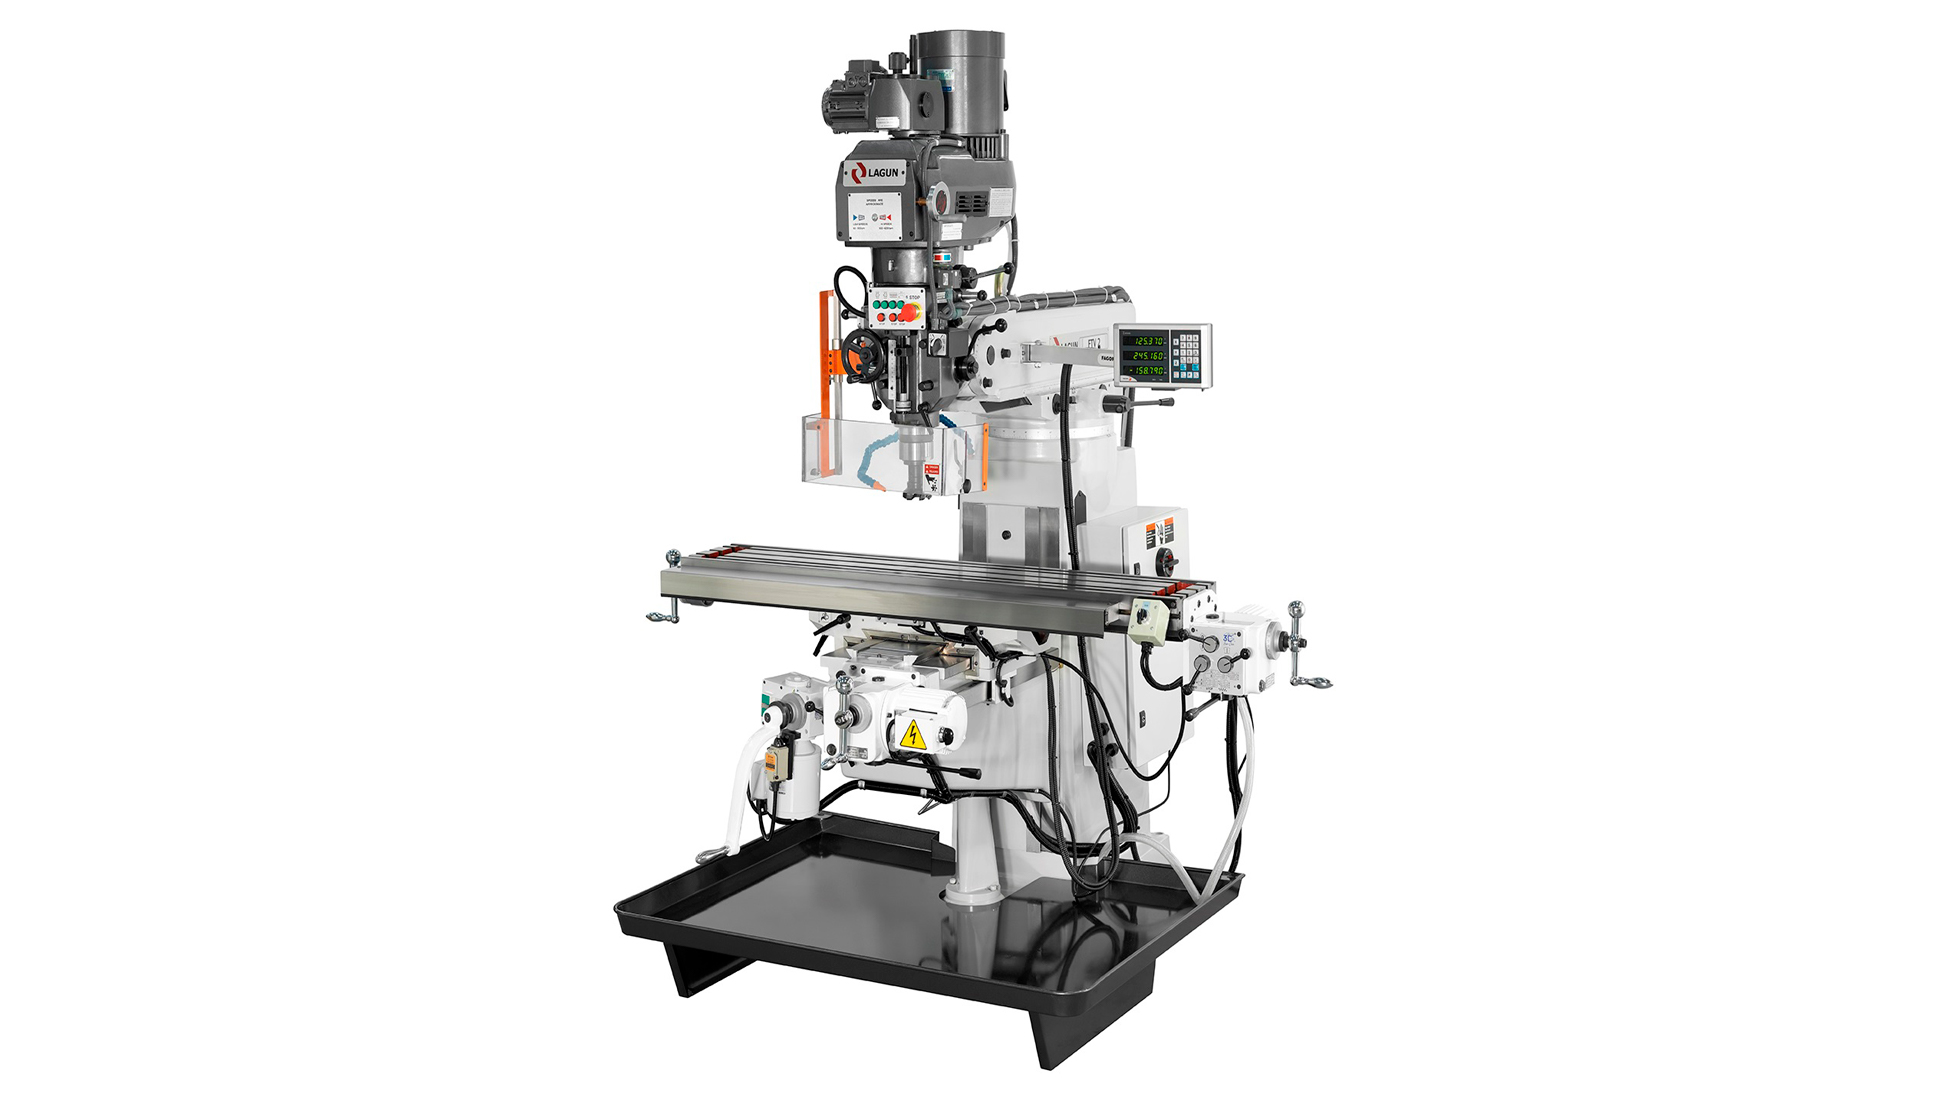 Other milling machines Vertical Turret Milling Machine: FTV-2 model